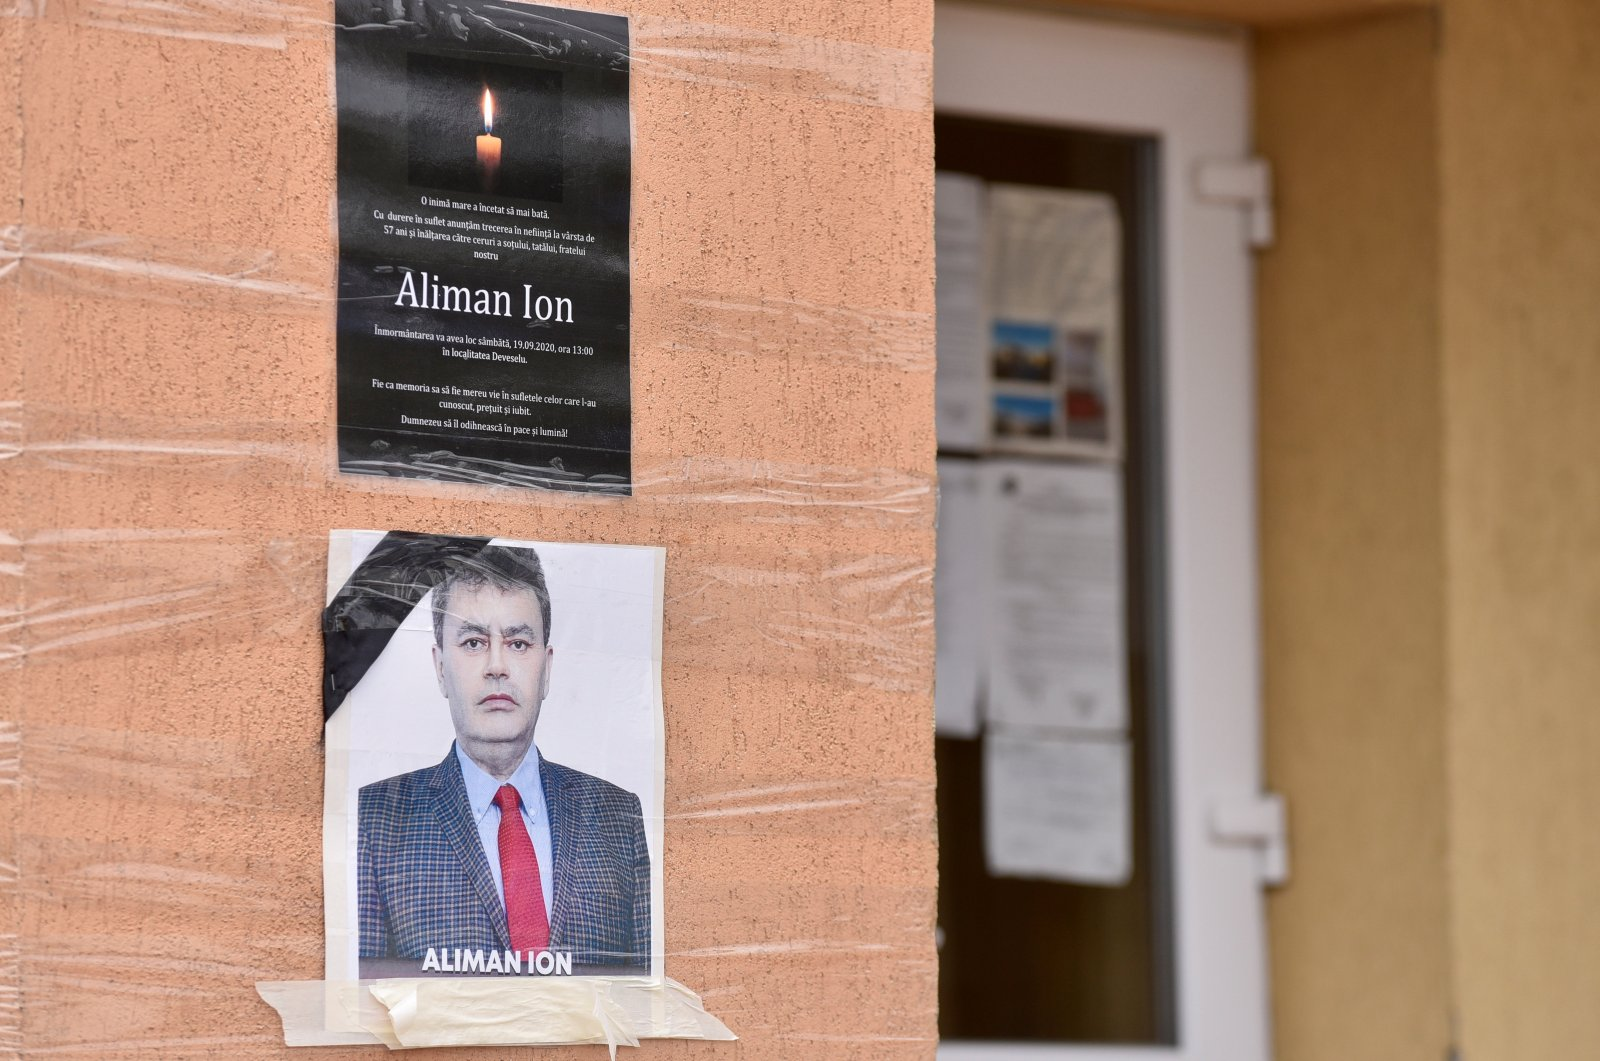 An obituary photo of former mayor Aliman Ion is taped onto the walls of the city hall in Deveselu, Romania, Sept. 28, 2020. (Reuters Photo)